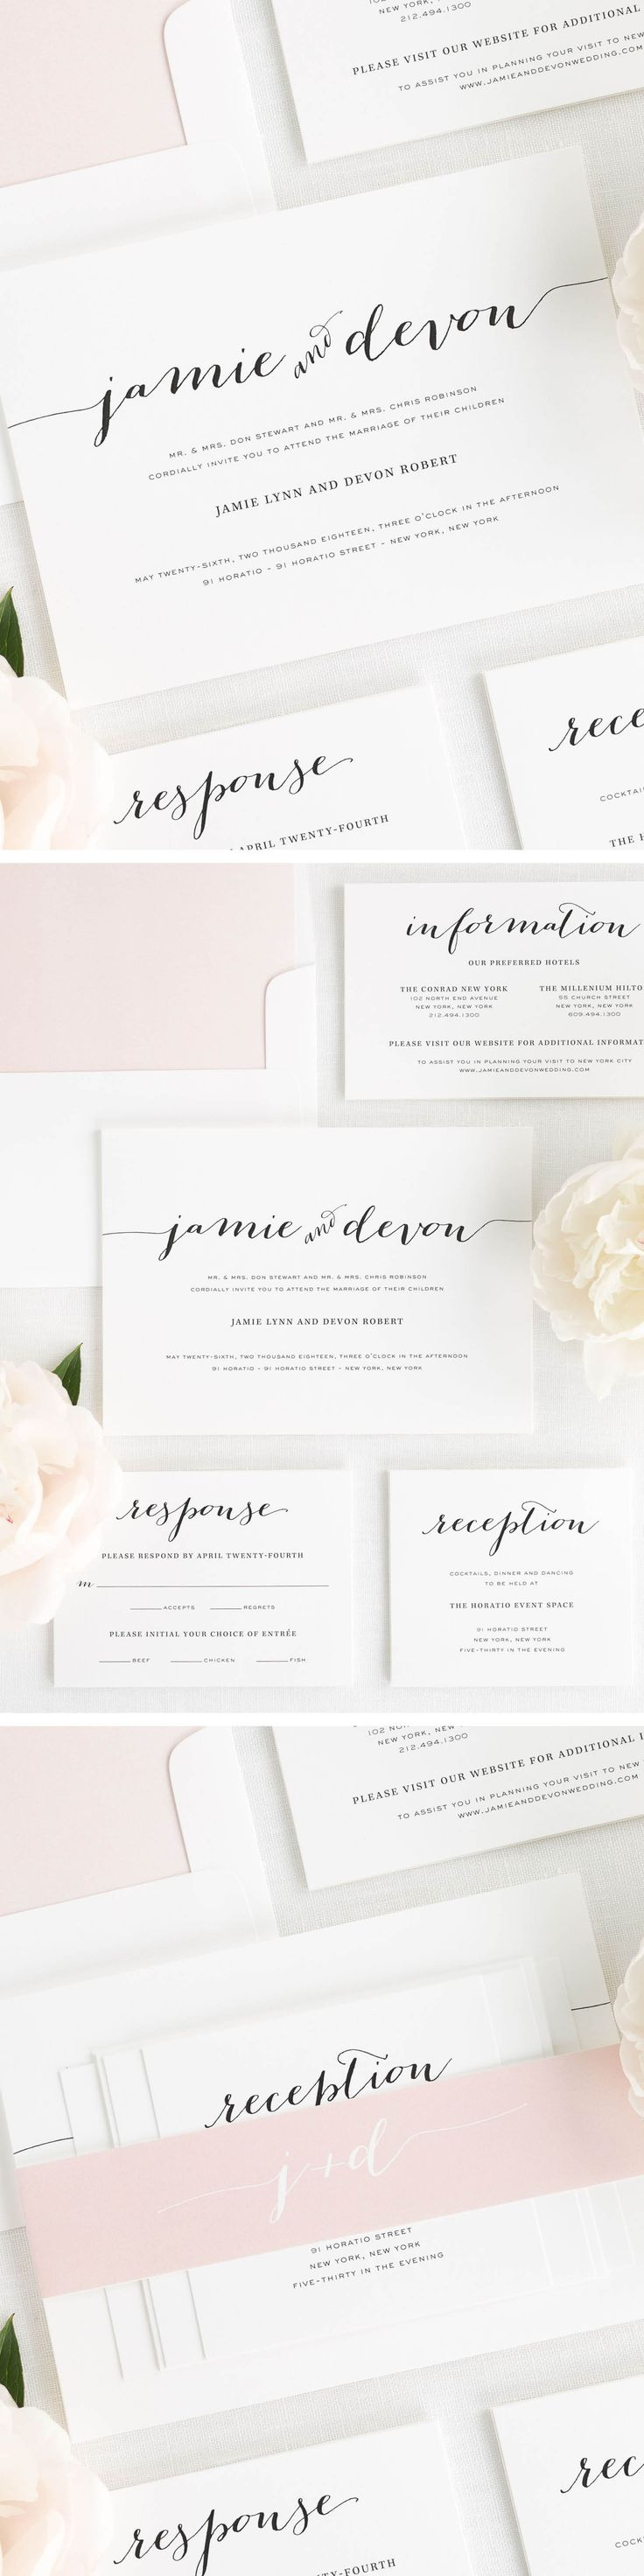 A stylish script font with calligraphic lines creates the couple�s names on these unique wedding invitations. Shown in black with a blush belly band and simple watercolor envelope liner.